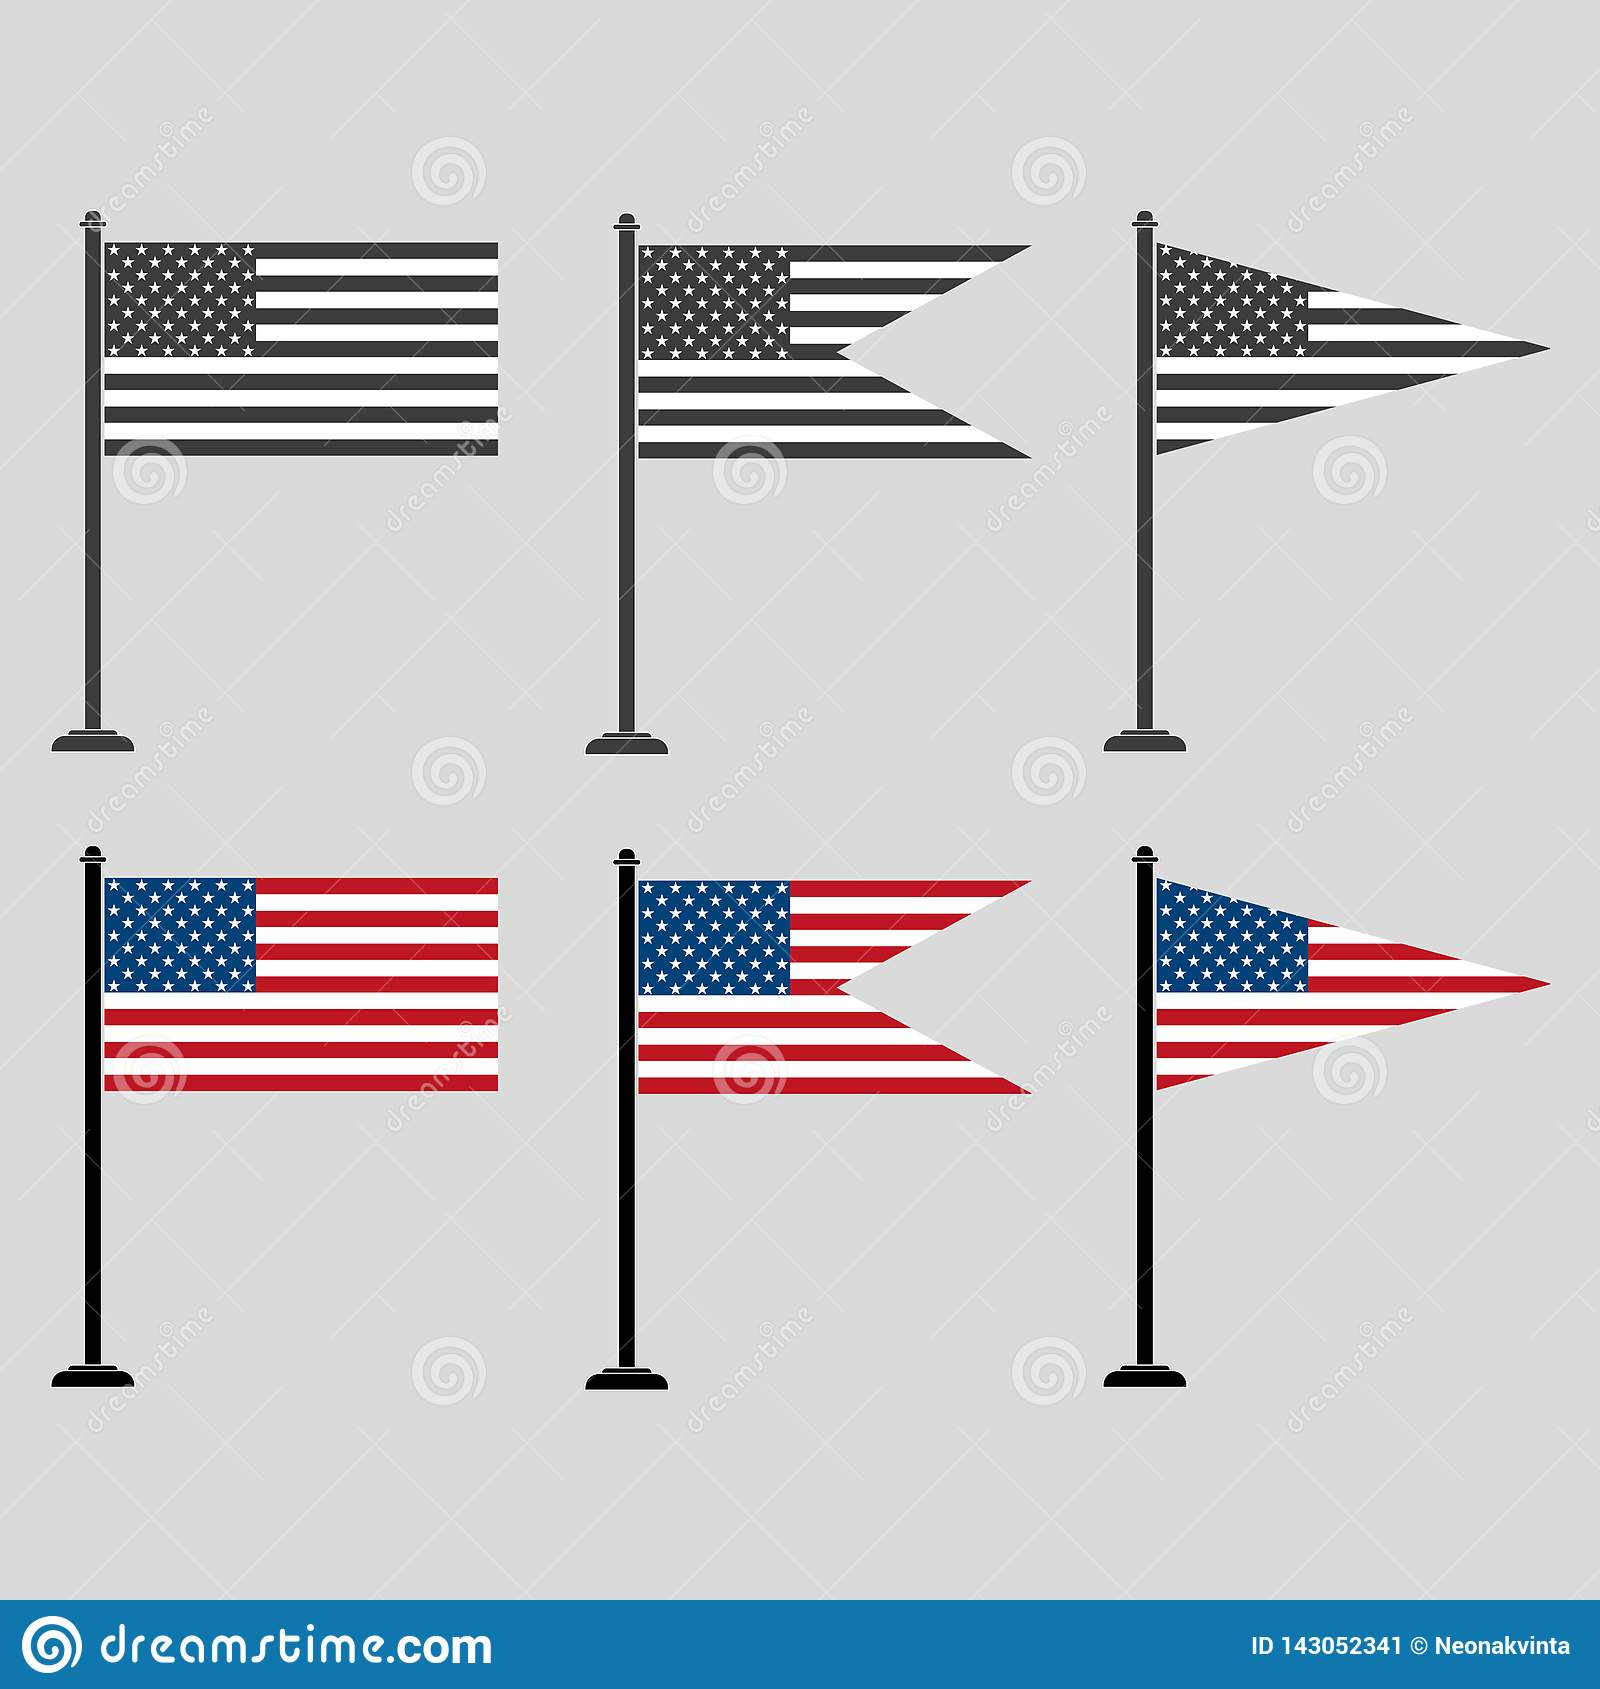 A set of American flags of different shapes, colored and gray